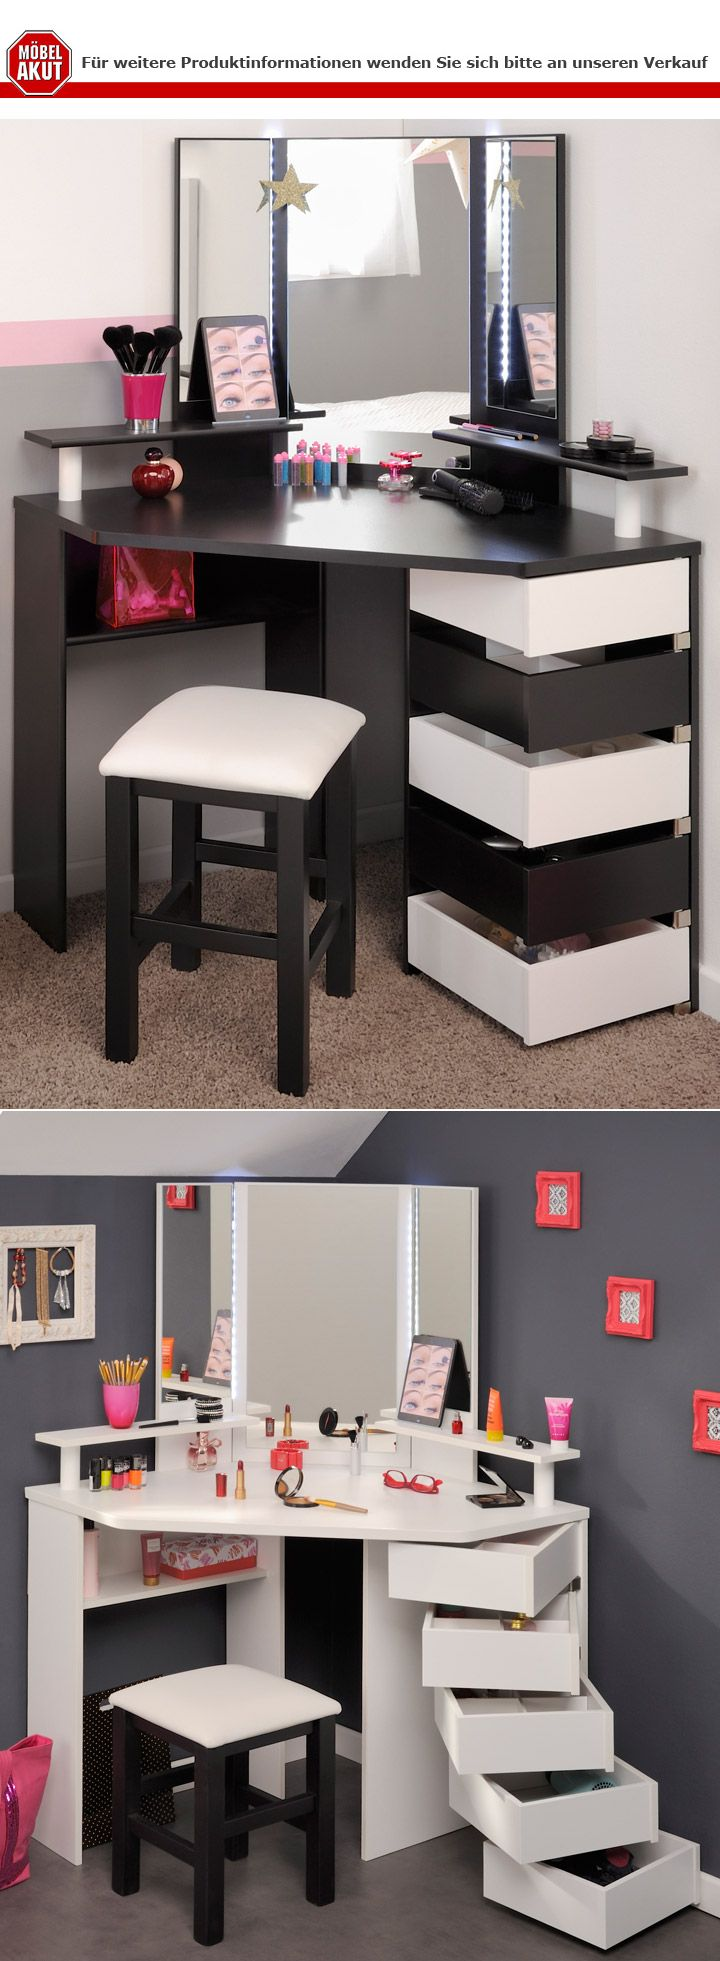 eck schminktisch mit hocker volage schwarz wei frisiertisch mit led beleuchtung 4059236043431. Black Bedroom Furniture Sets. Home Design Ideas